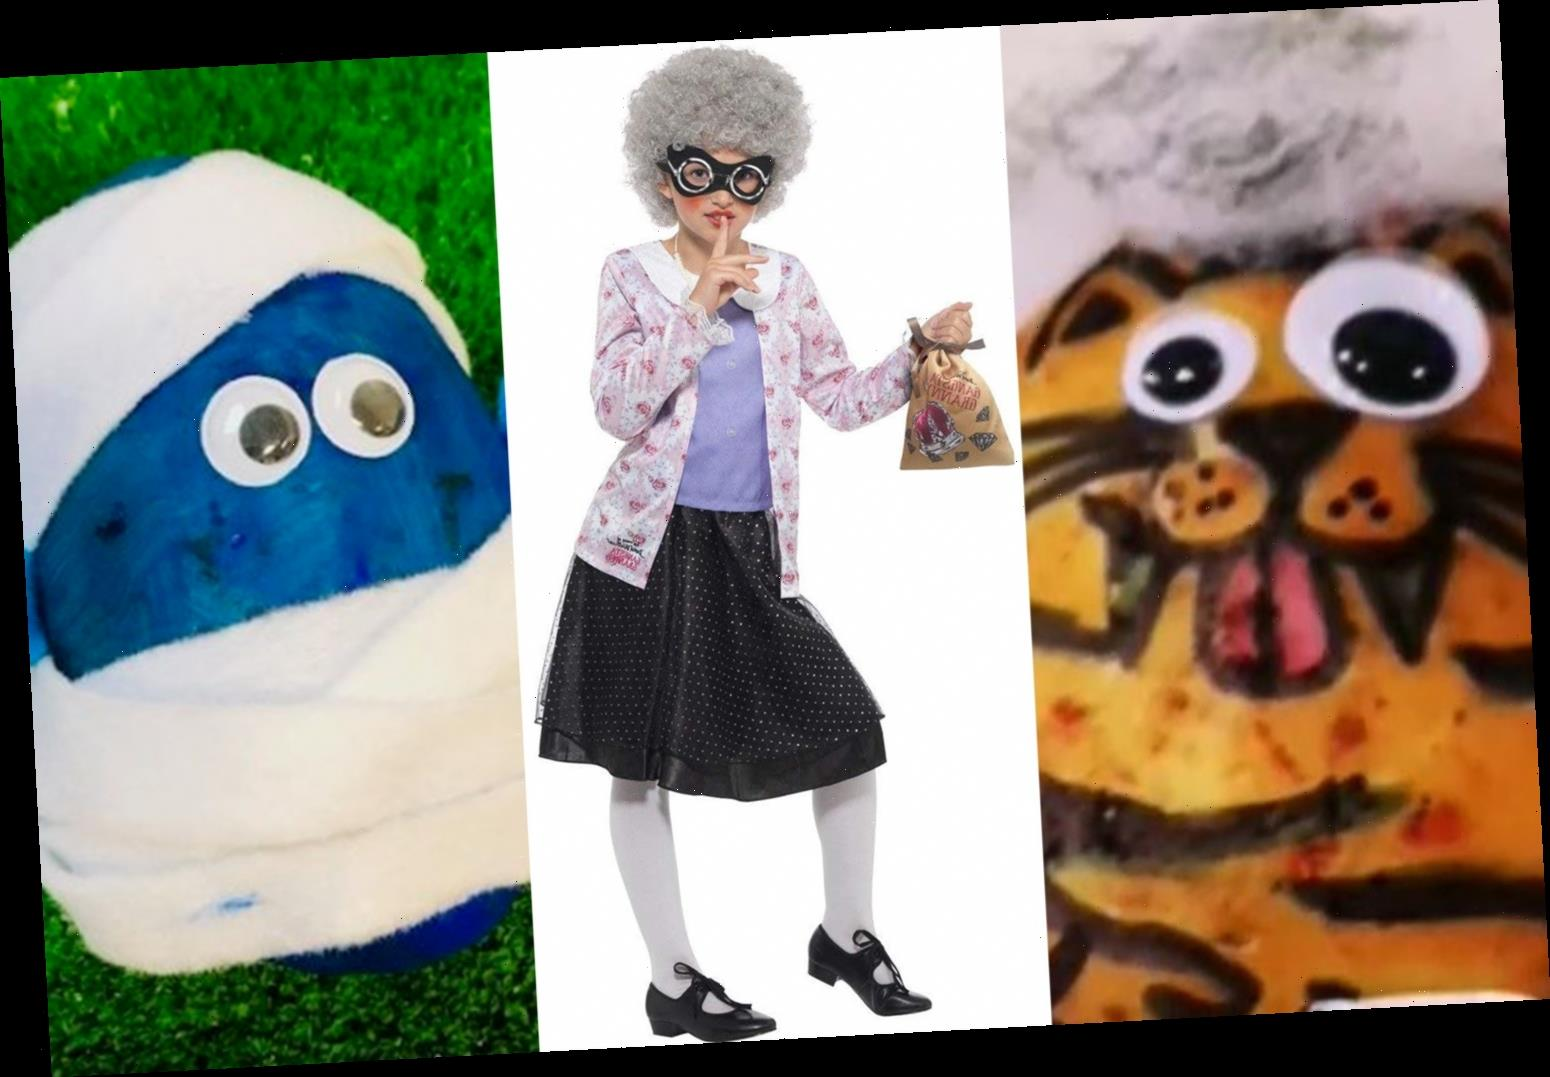 World Book Day 2021: Last-minute costume ideas from Gangster Granny to Where's Wally?